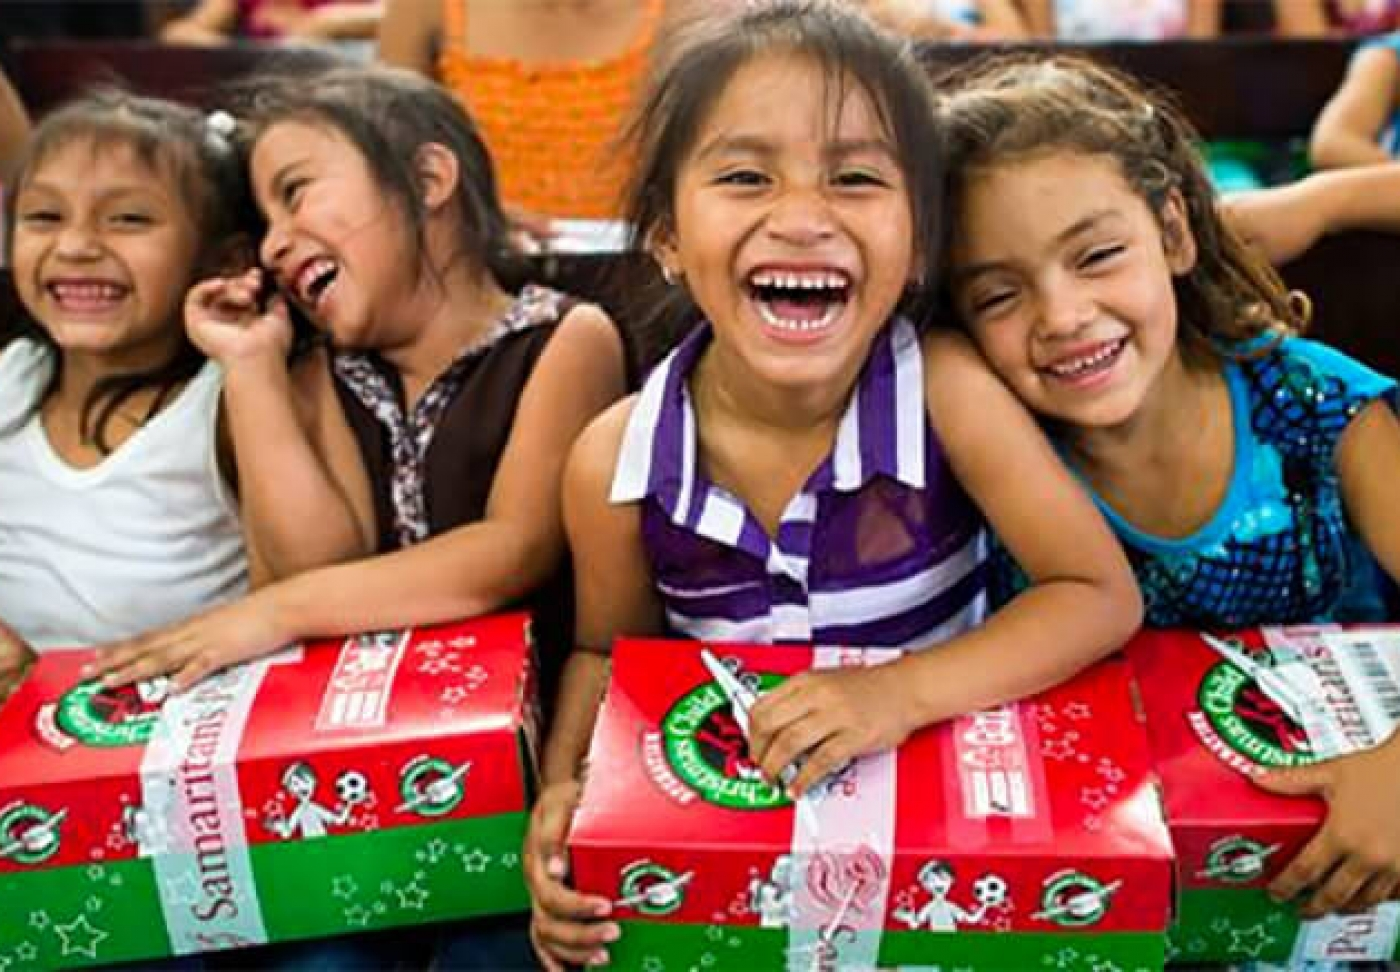 FB-Shoebox-Christmas-Gifts-With-Operation-Christmas-Child-partieswithacause.com-service